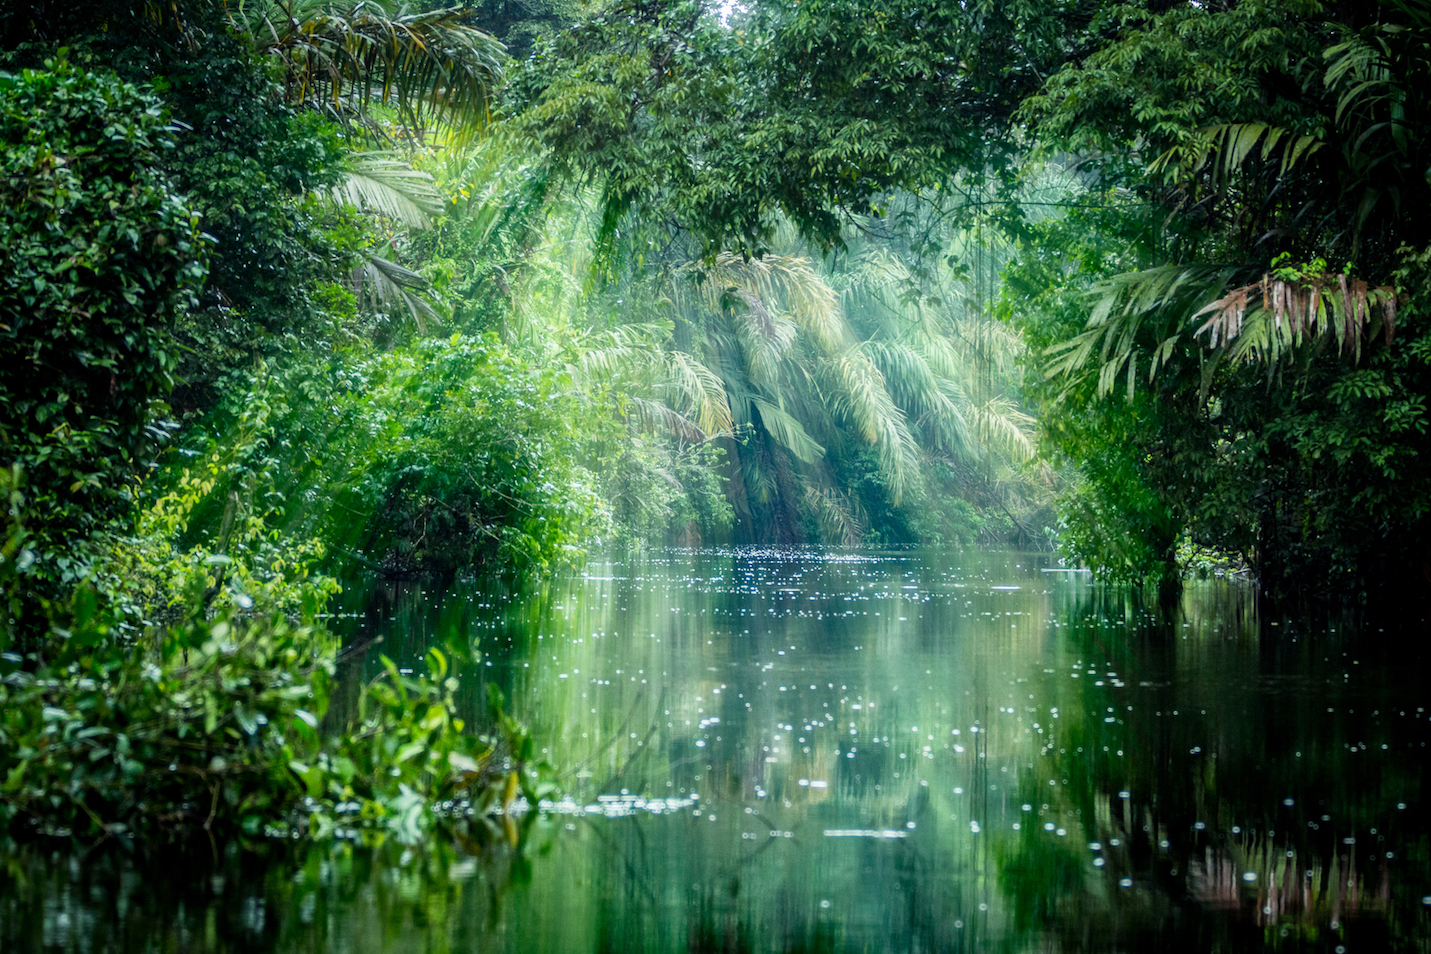 In this edition of our recurring Your World feature, we take a look at the greatest rainforests of Instagram.